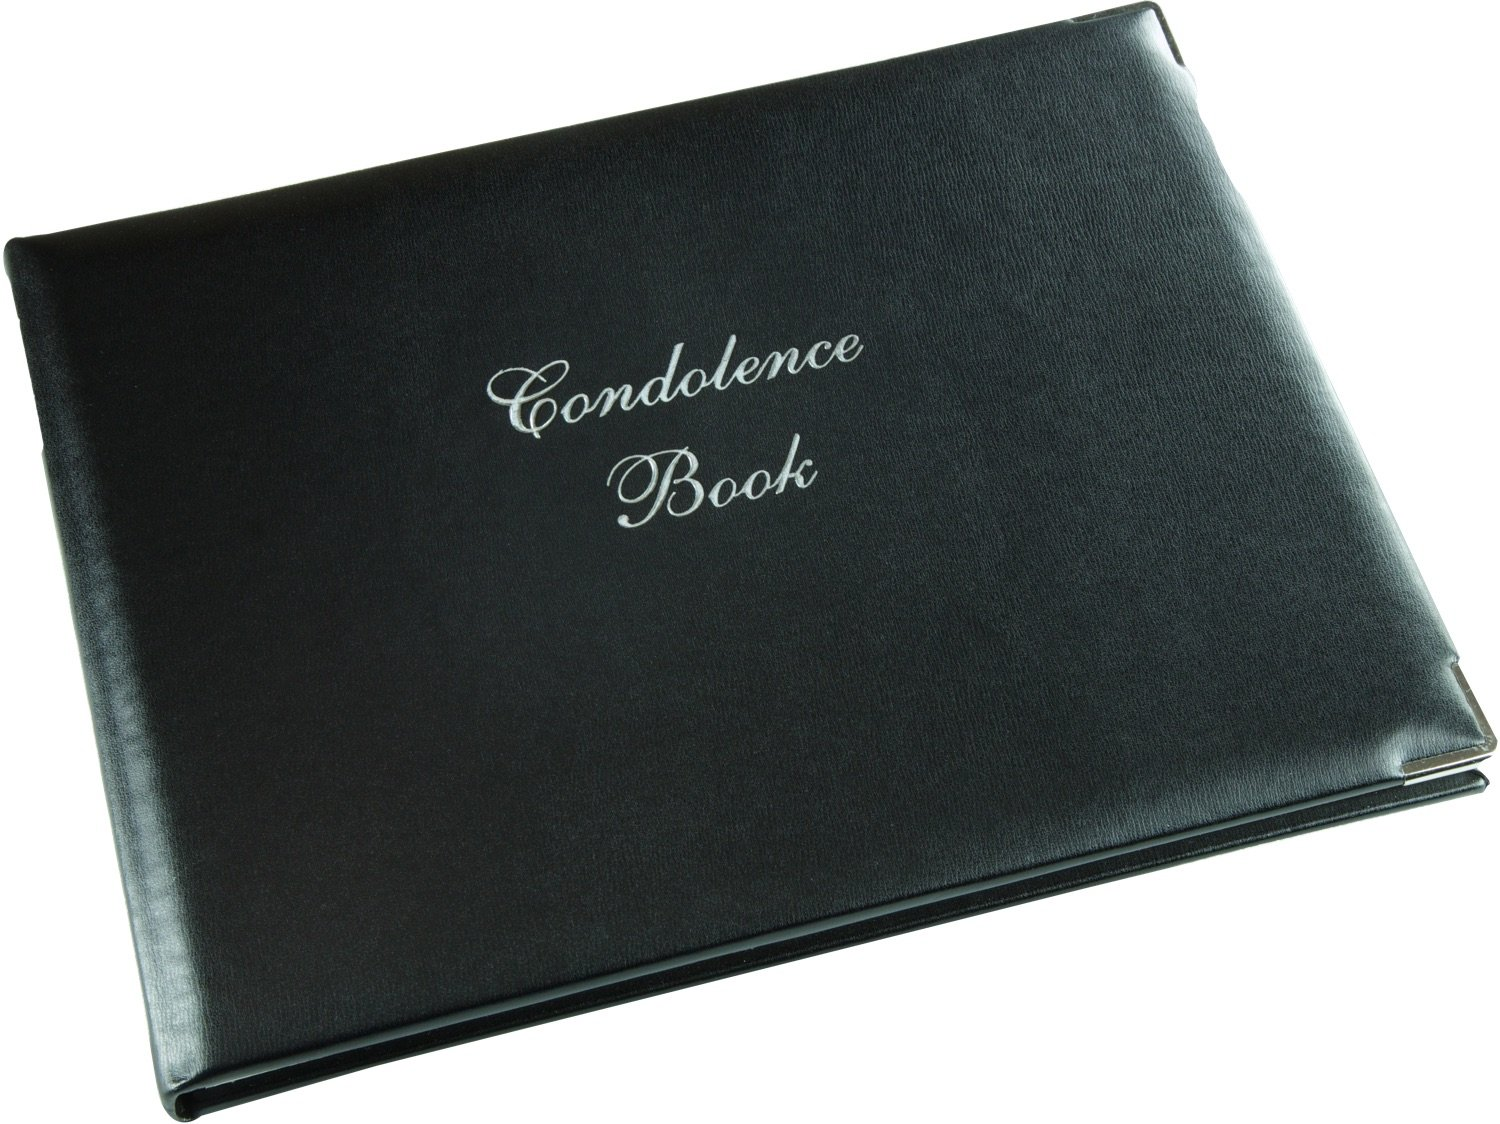 Condolence Book with Silver Corners - Black - Funeral Guest Book - Memorial Book - Presentation Boxed - (LARGE SIZE - Width 10.5 inch - Height 7.6 inch - Depth 0.6 inch)